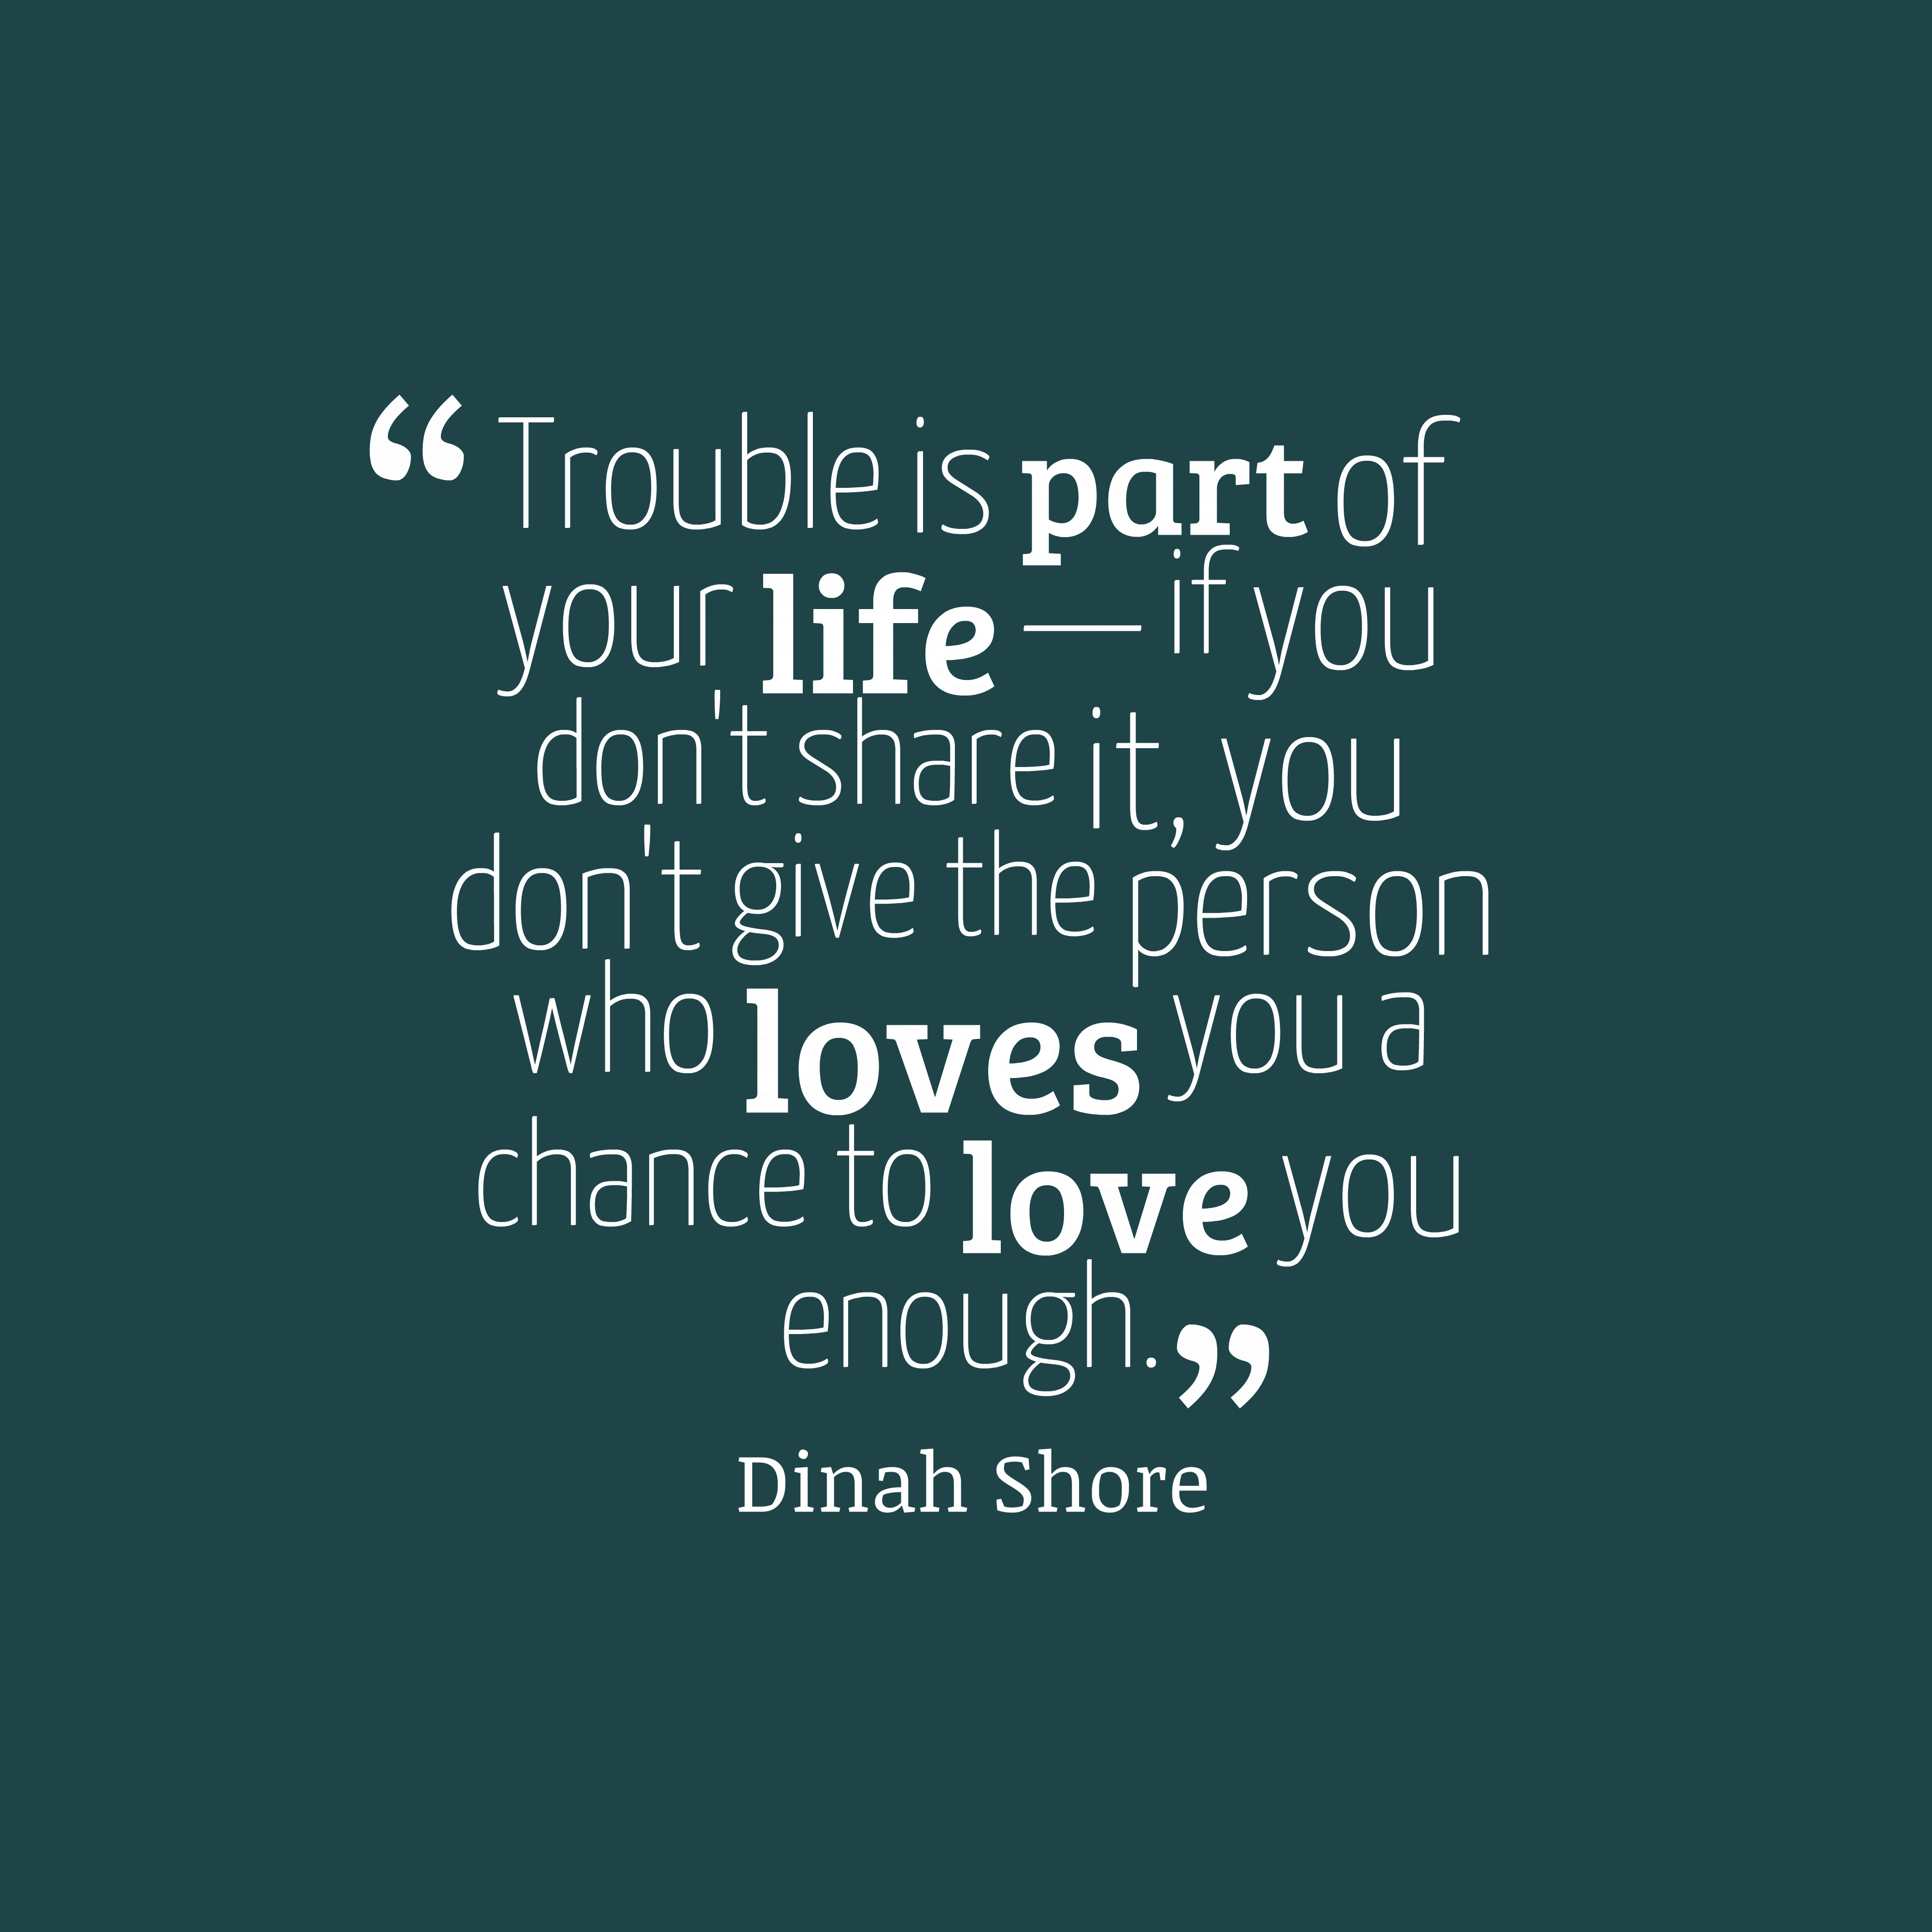 Quotes image of Trouble is part of your life — if you don't share it, you don't give the person who loves you a chance to love you enough.